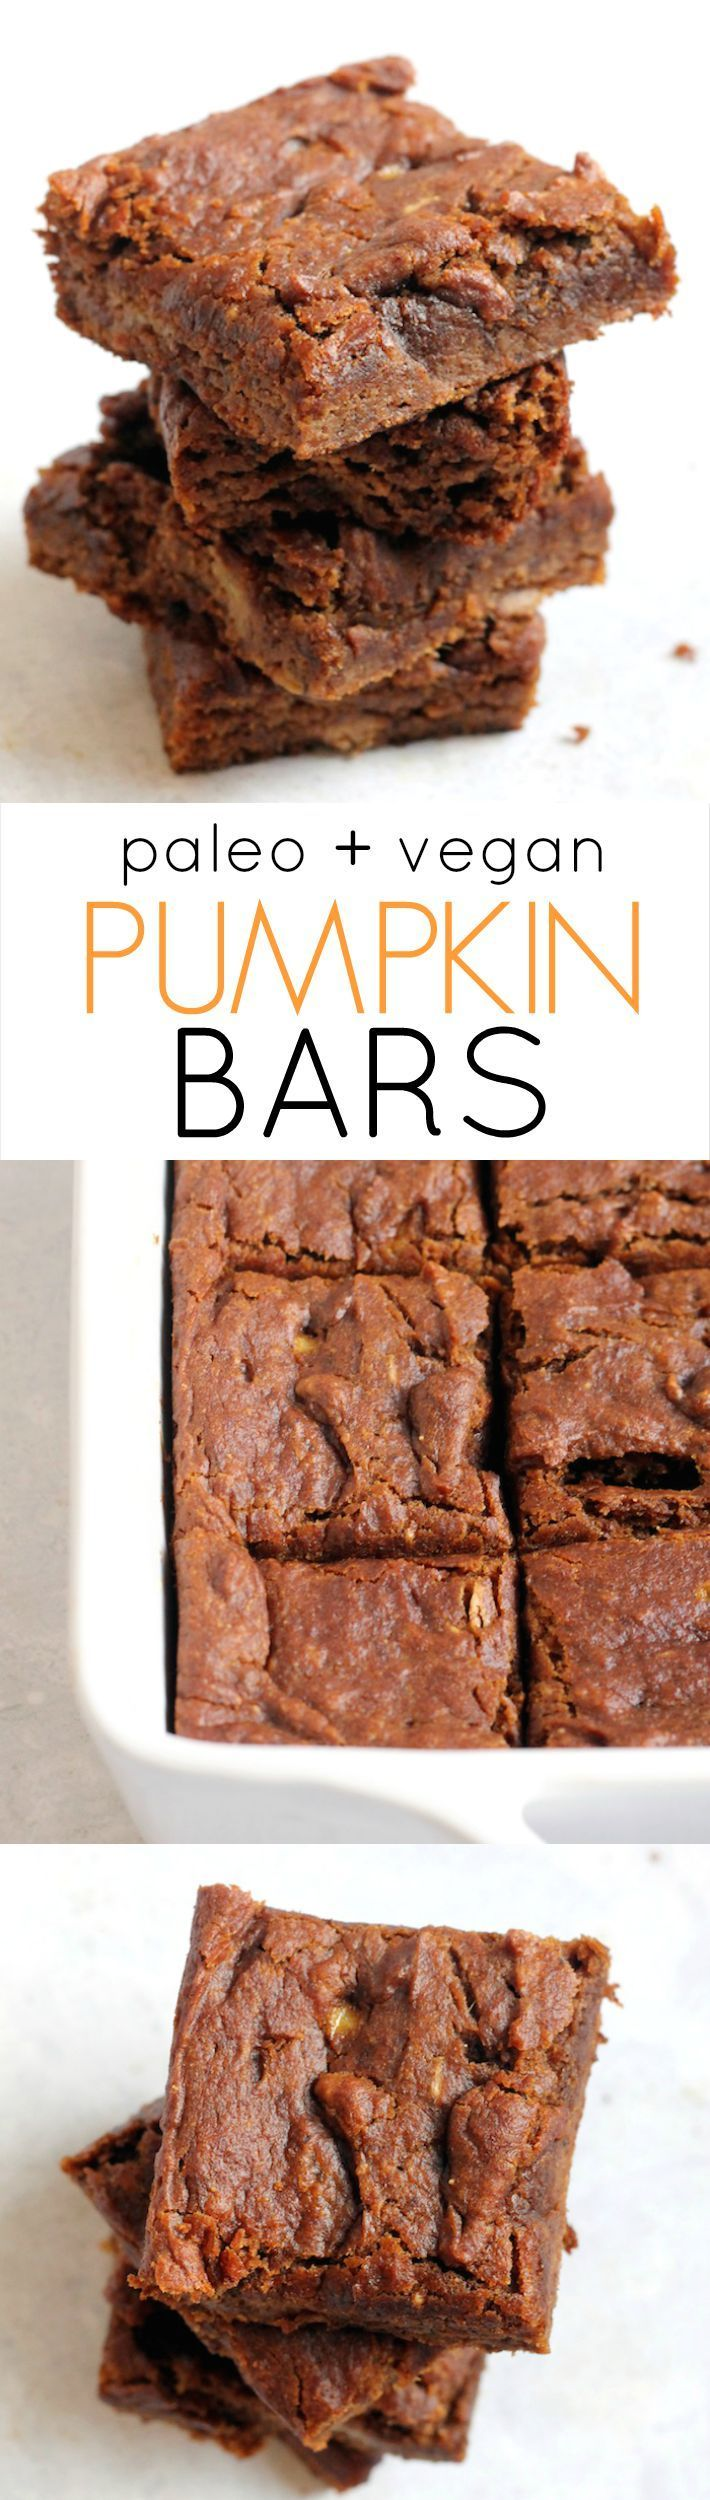 nike outlet mens shoes The Ultimate Pumpkin Bars   paleo  vegan  and free of oil  and refined sugar  These quick and easy bars are the perfect guilt free treat